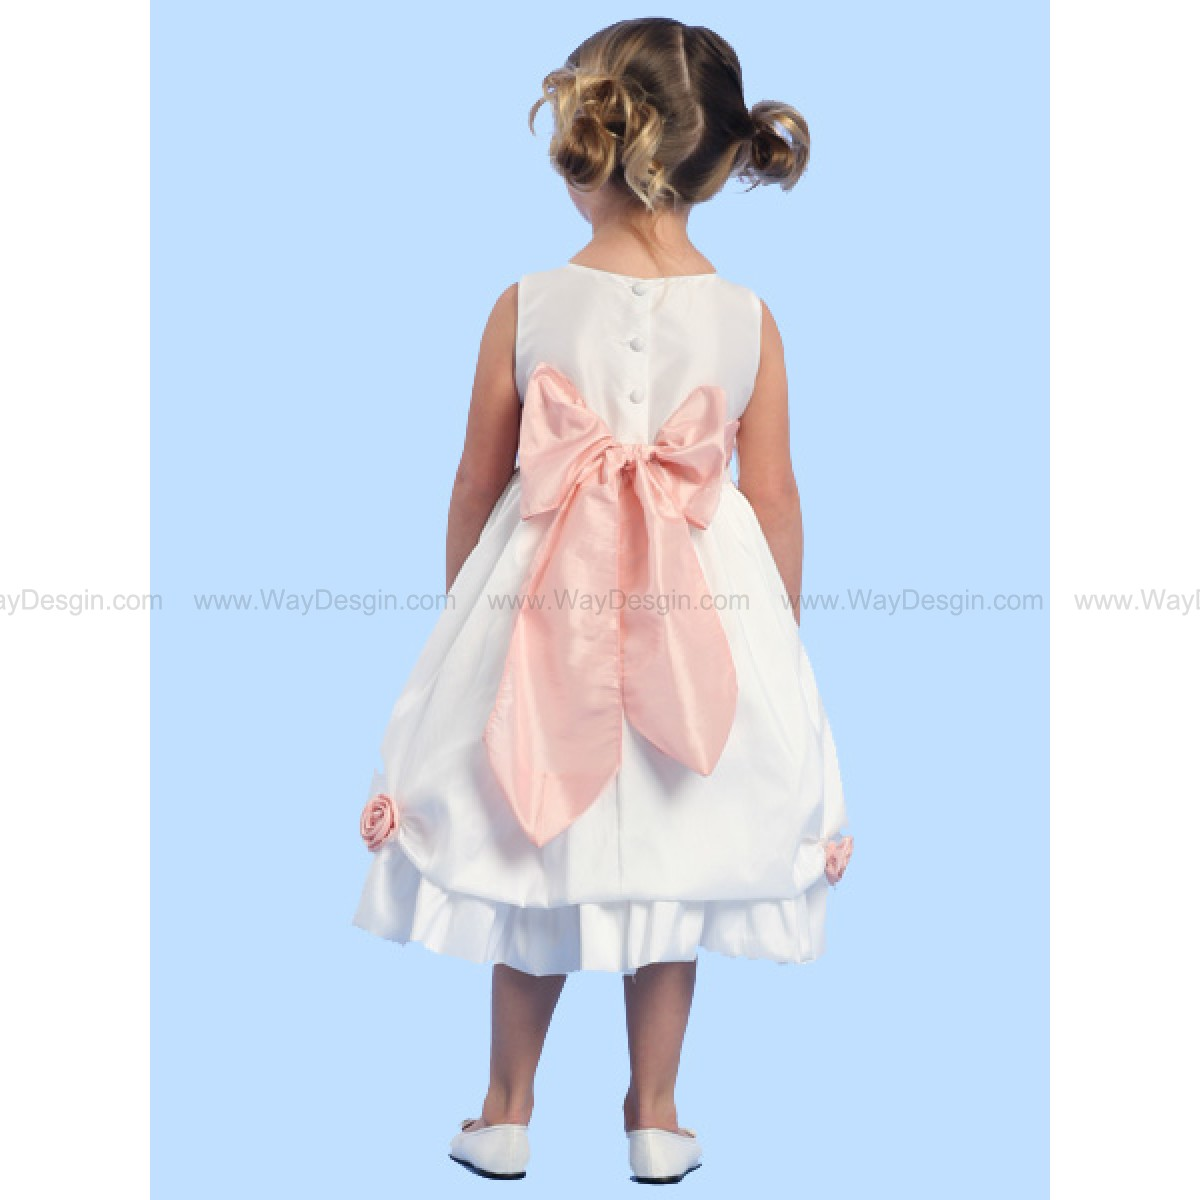 Blossom White Sleeveless Taffeta Dress Detachable Flowers and Sash